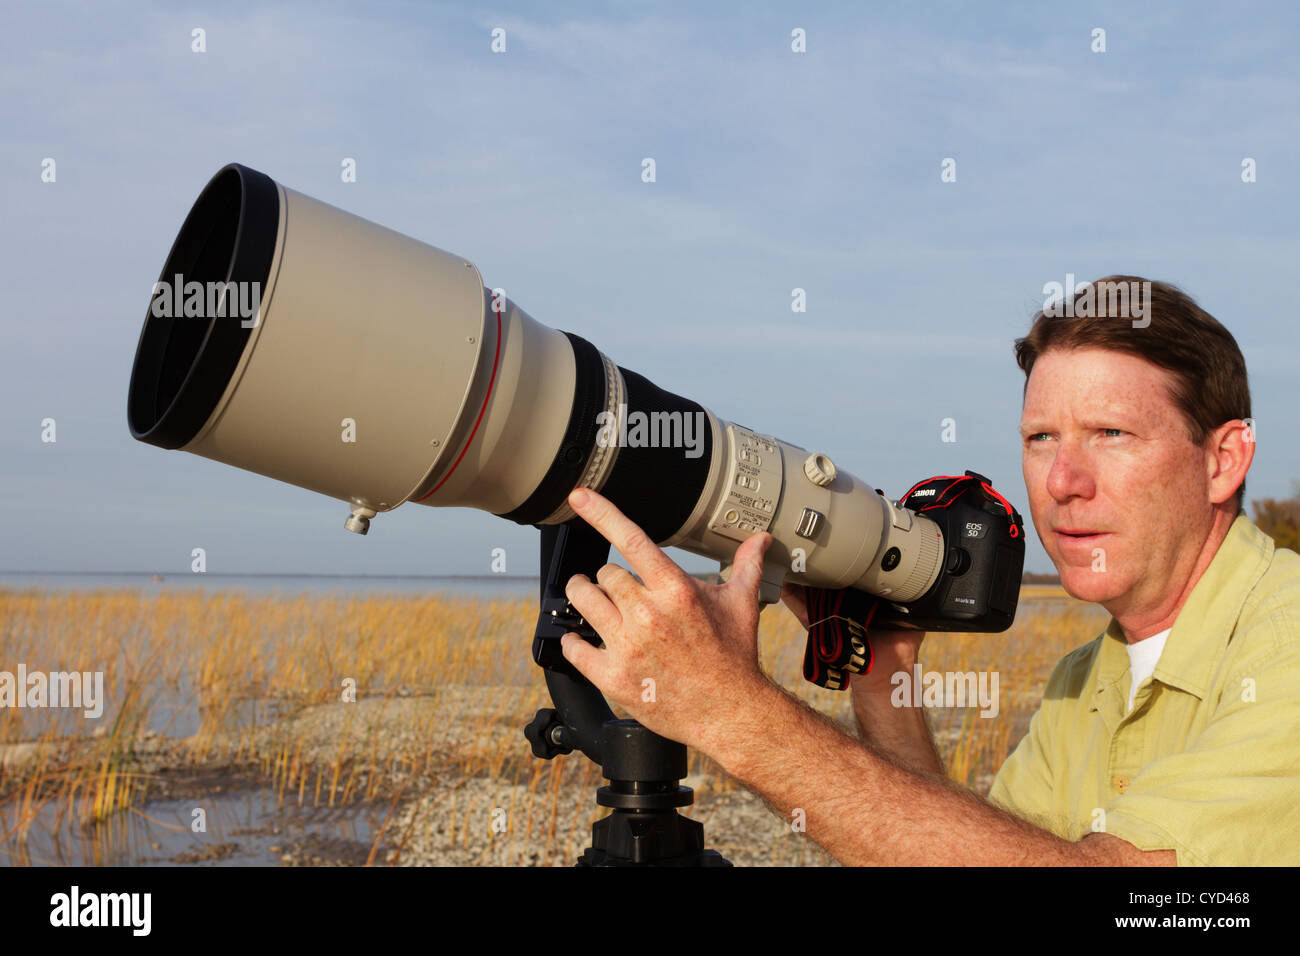 Professional photographer with a super telephoto lens watching for birds to photograph. - Stock Image